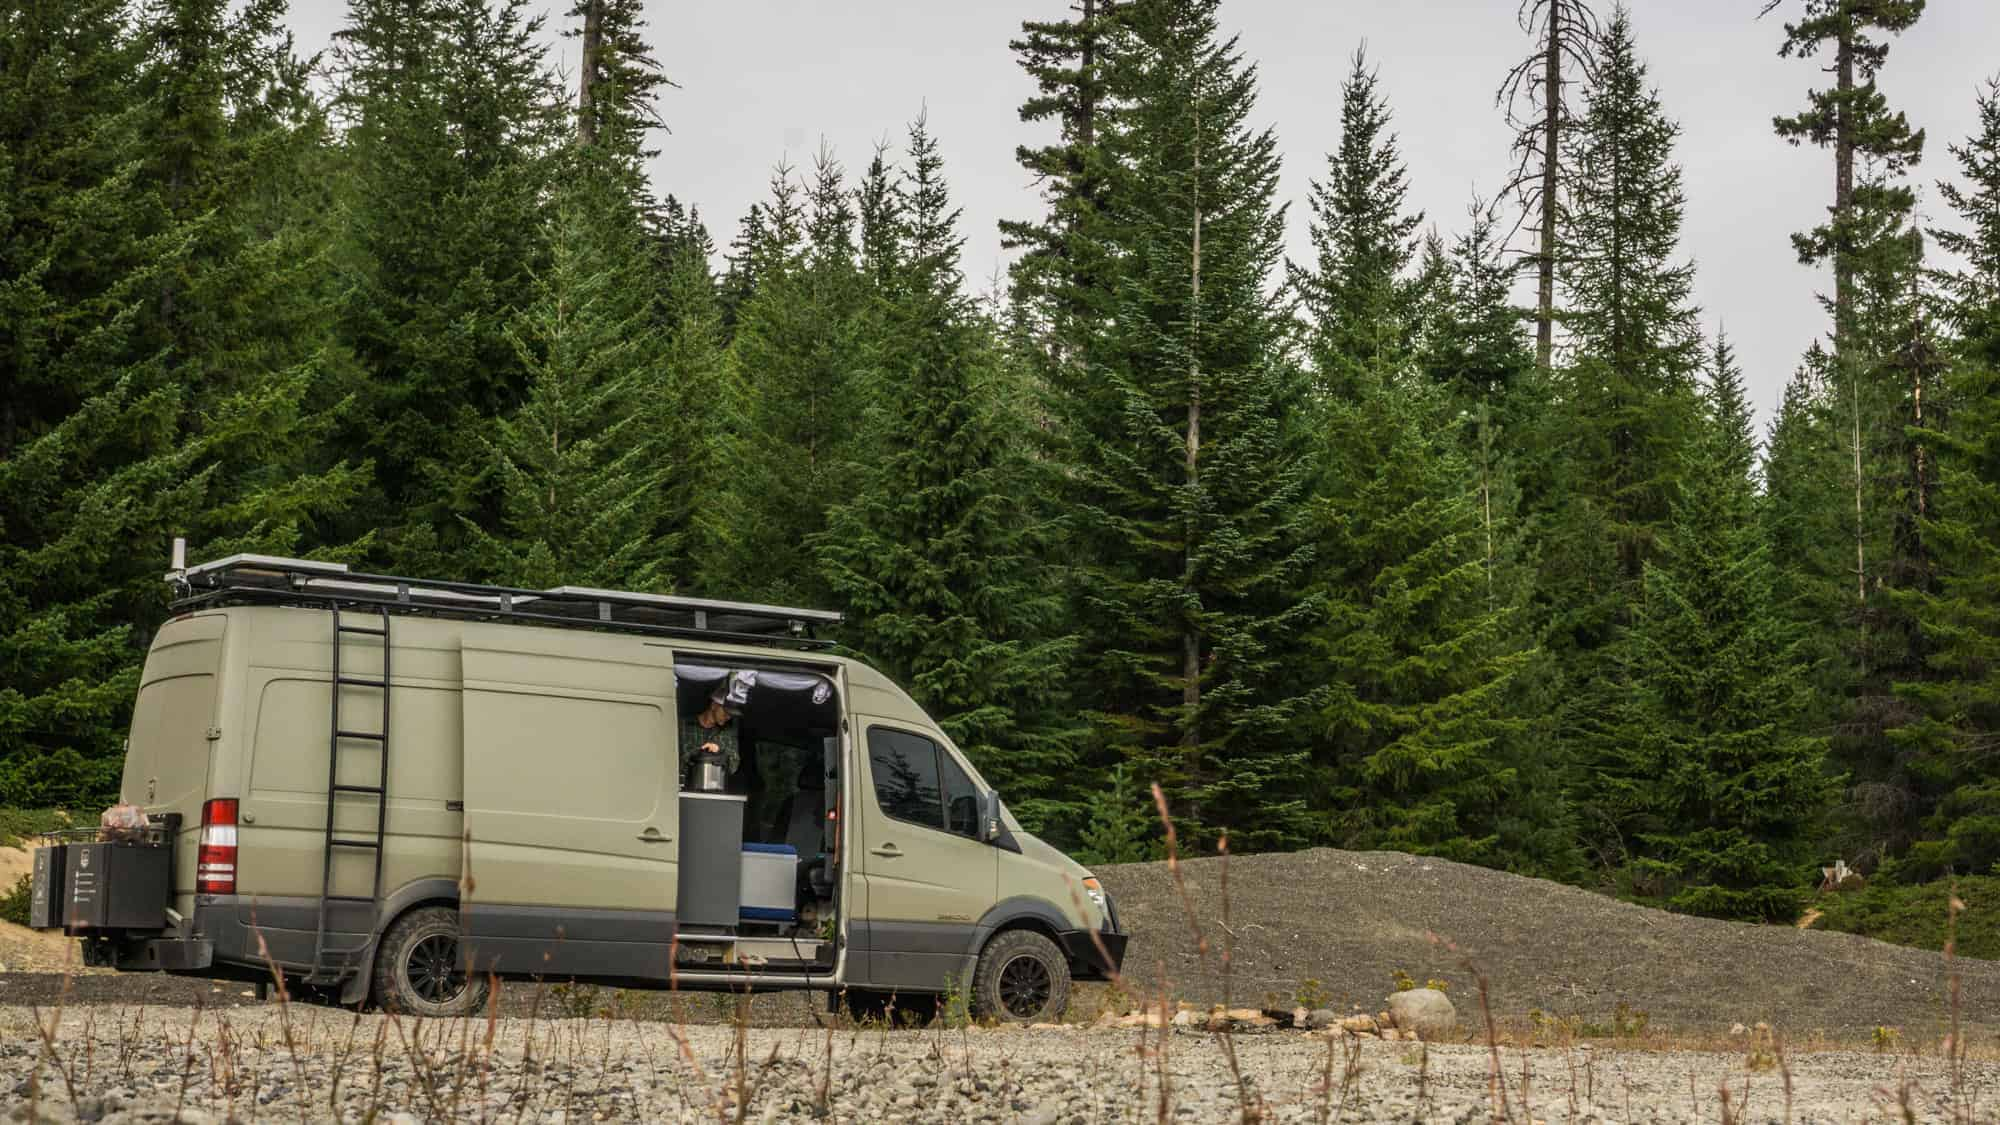 How-to-afford-van-life-5